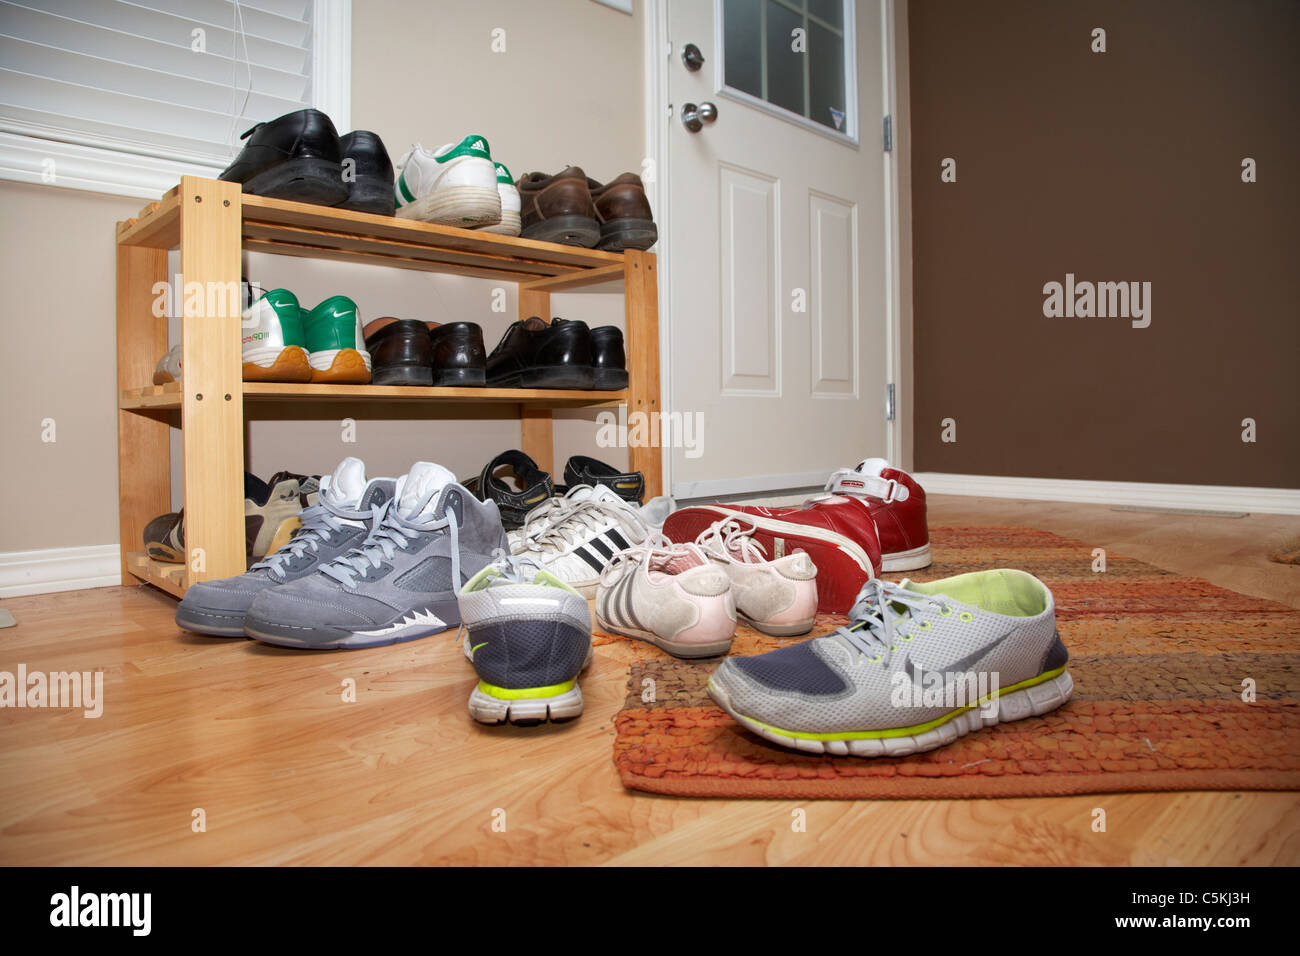 pile of shoes inside the front door of a house in Canada to keep carpets and floors clean - Stock Image